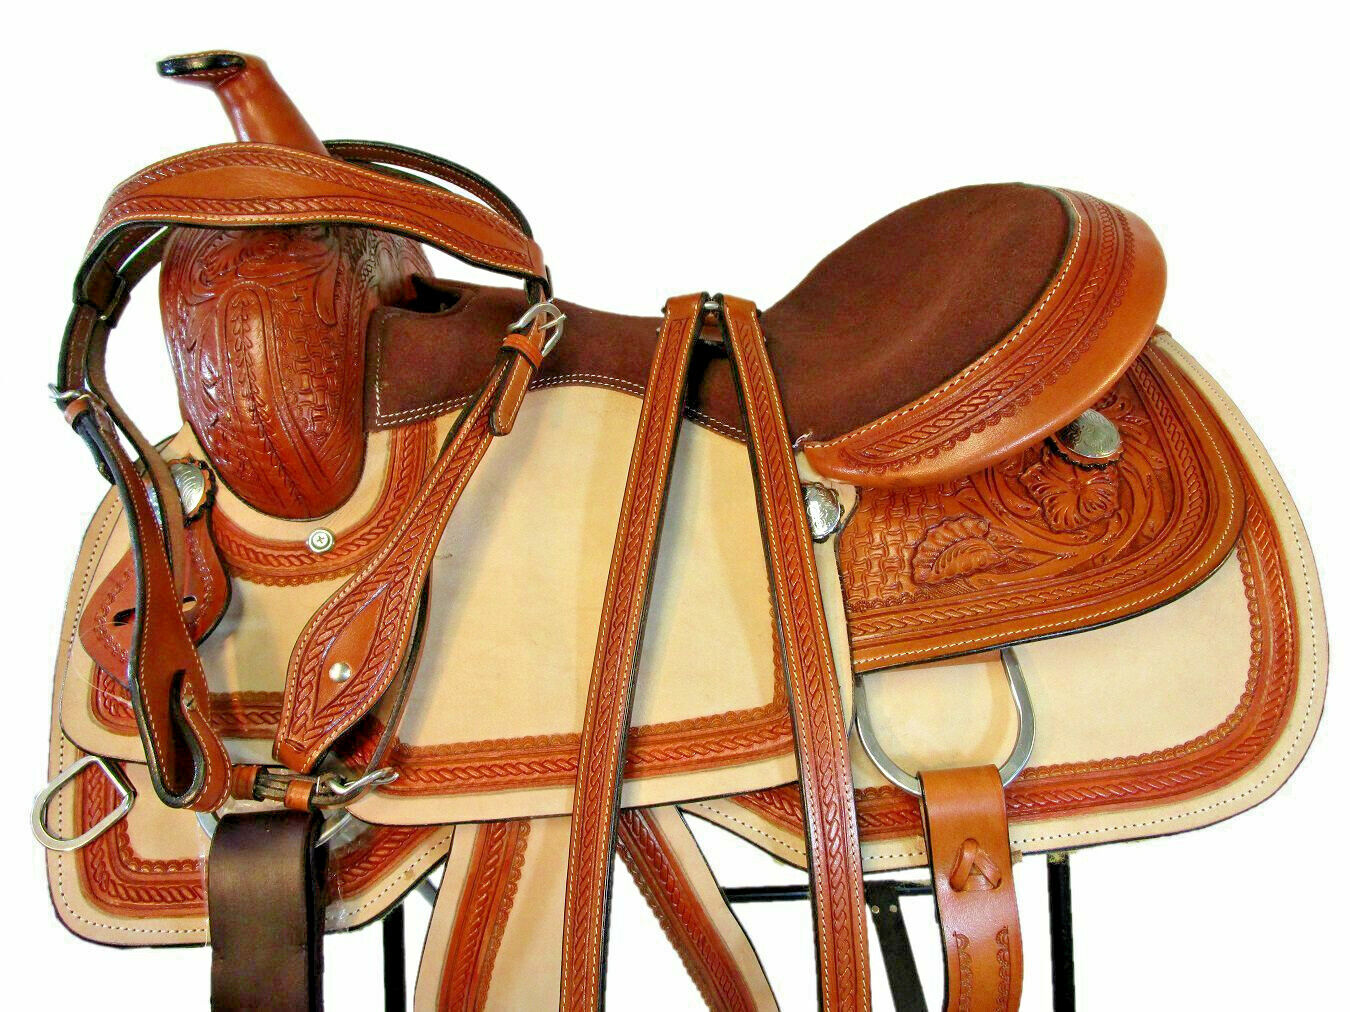 Pro 16 15 occidentales placer Trail Floral silla caballo Hermoso Cuero fileteado